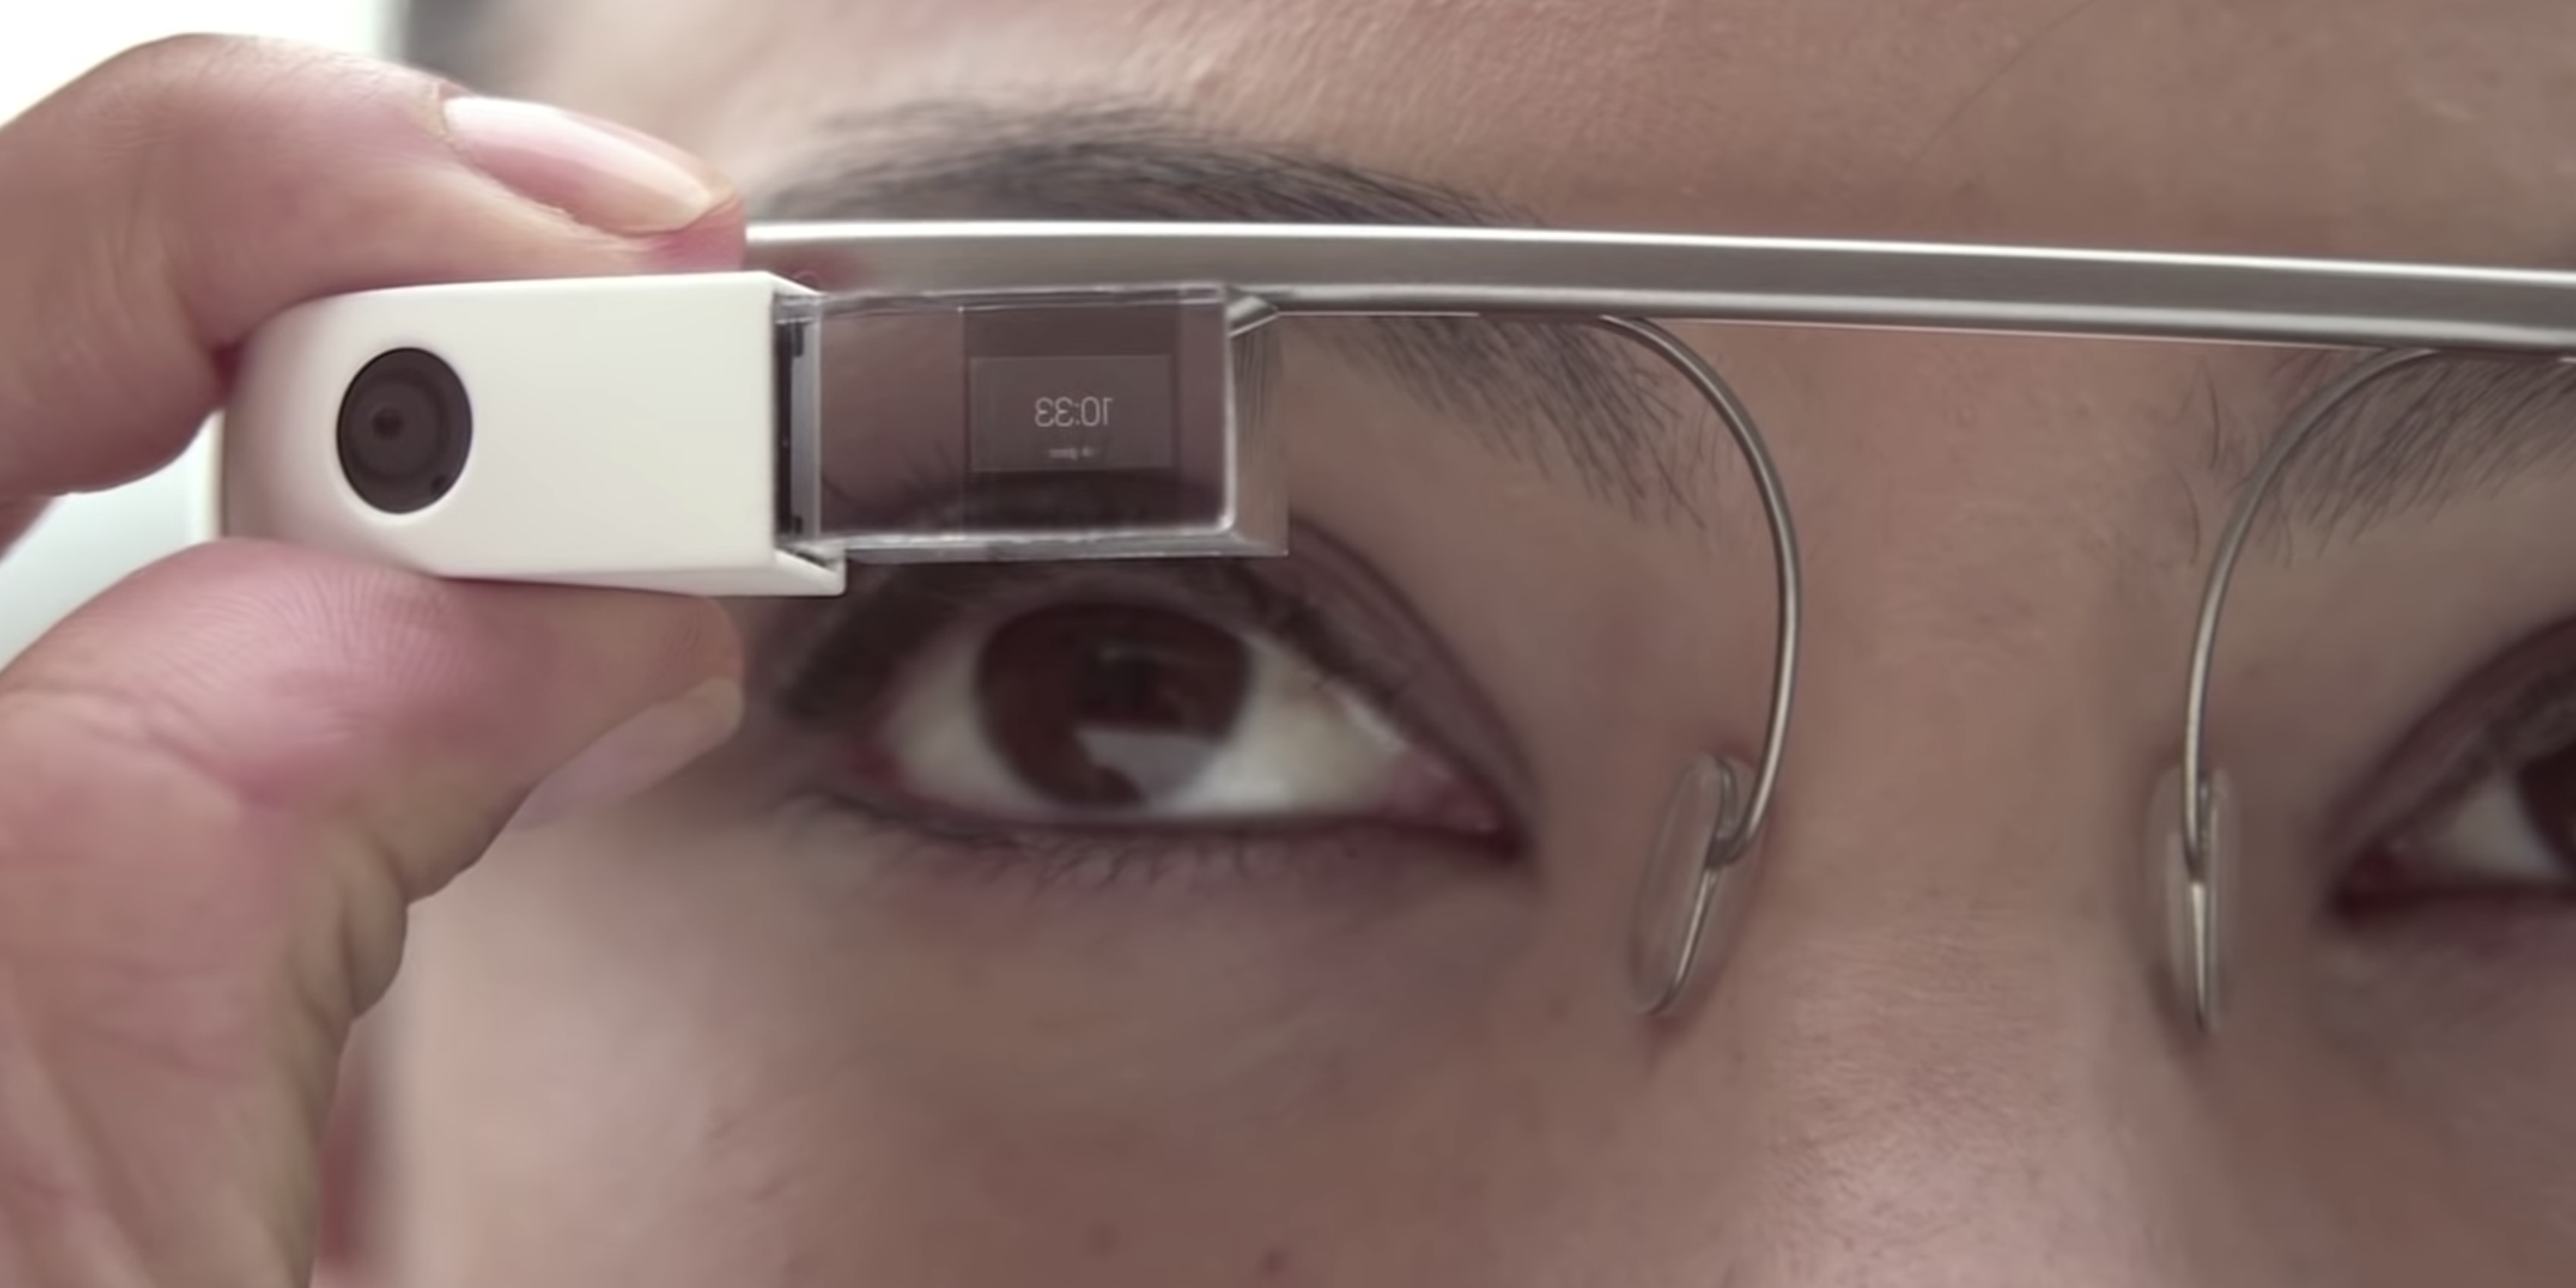 Google apps for Glass Explorer Edition will be killed in 2020 after final update